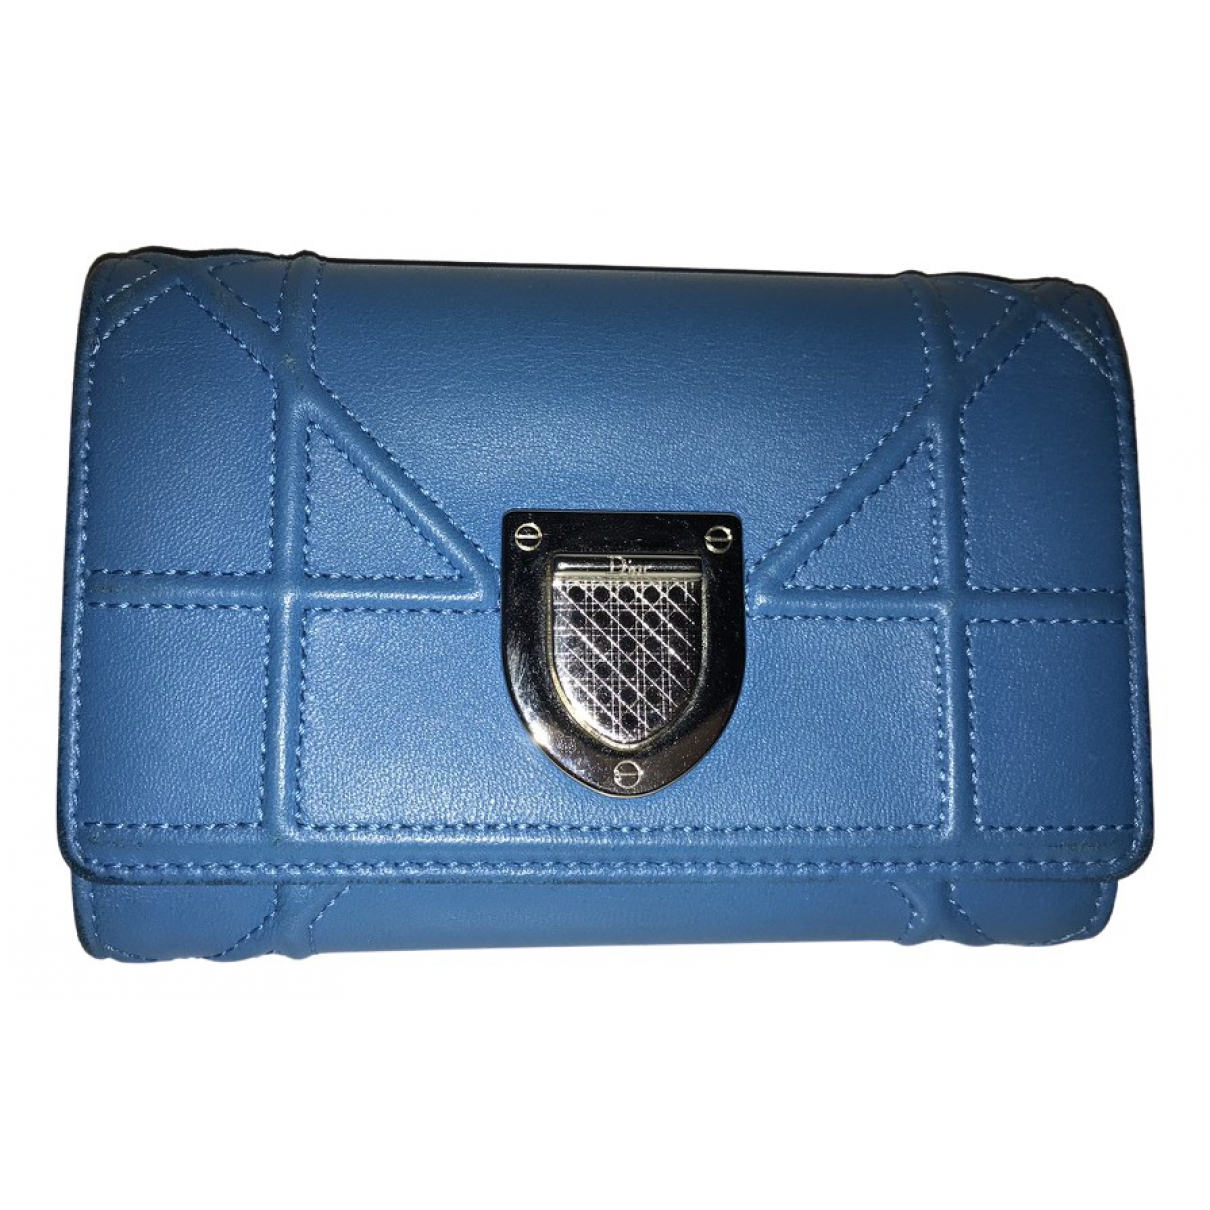 Dior Diorama Blue Leather Purses, wallet & cases for Women \N